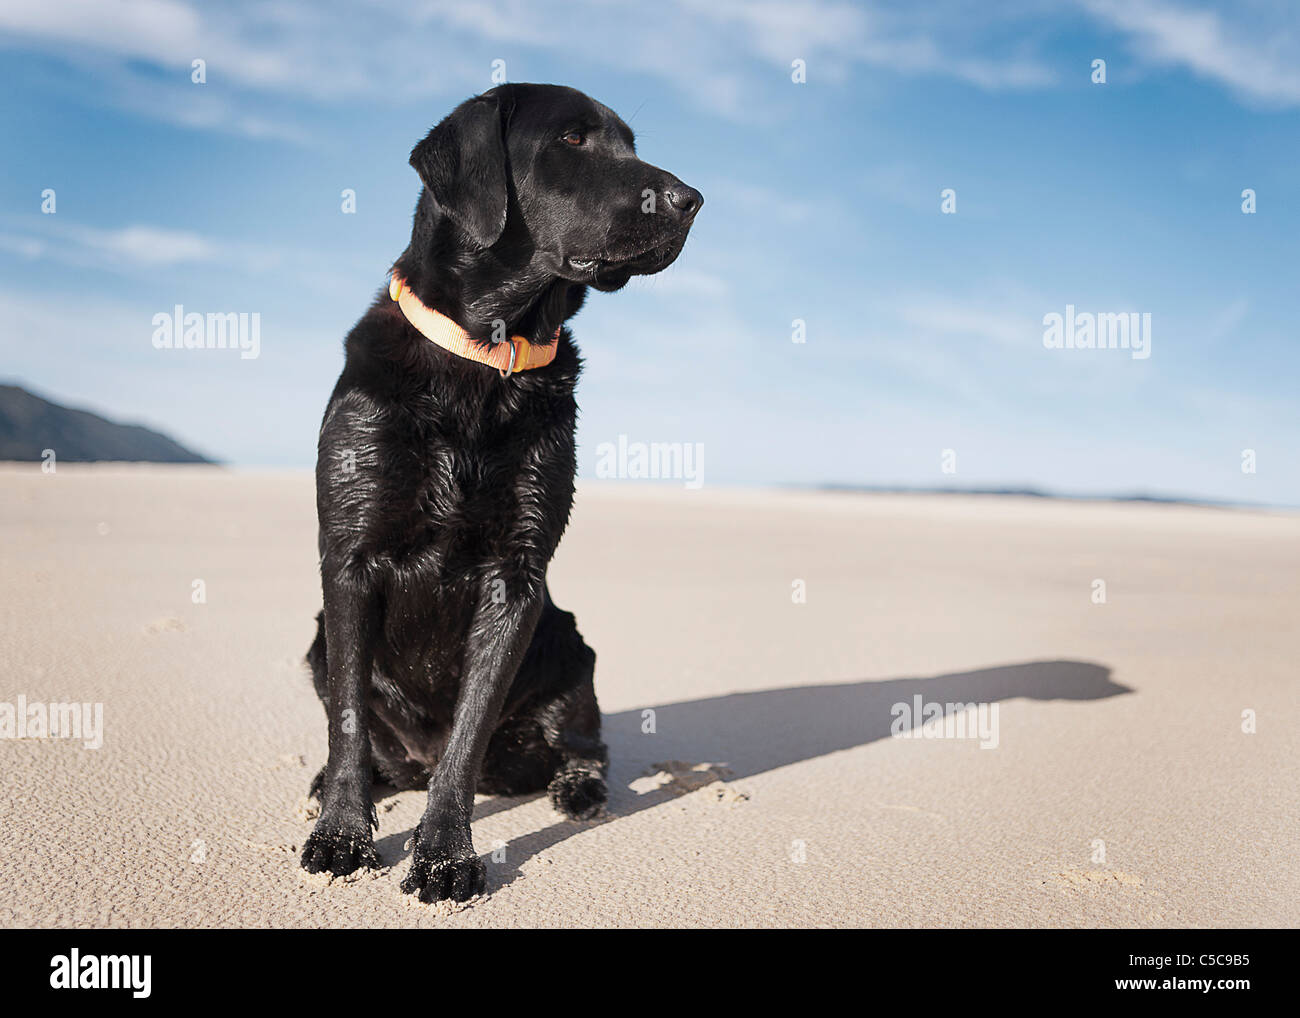 Black Labrador Dog On Beach; Los Lances Beach, Tarifa, Cadiz, Andalucia, Spain - Stock Image